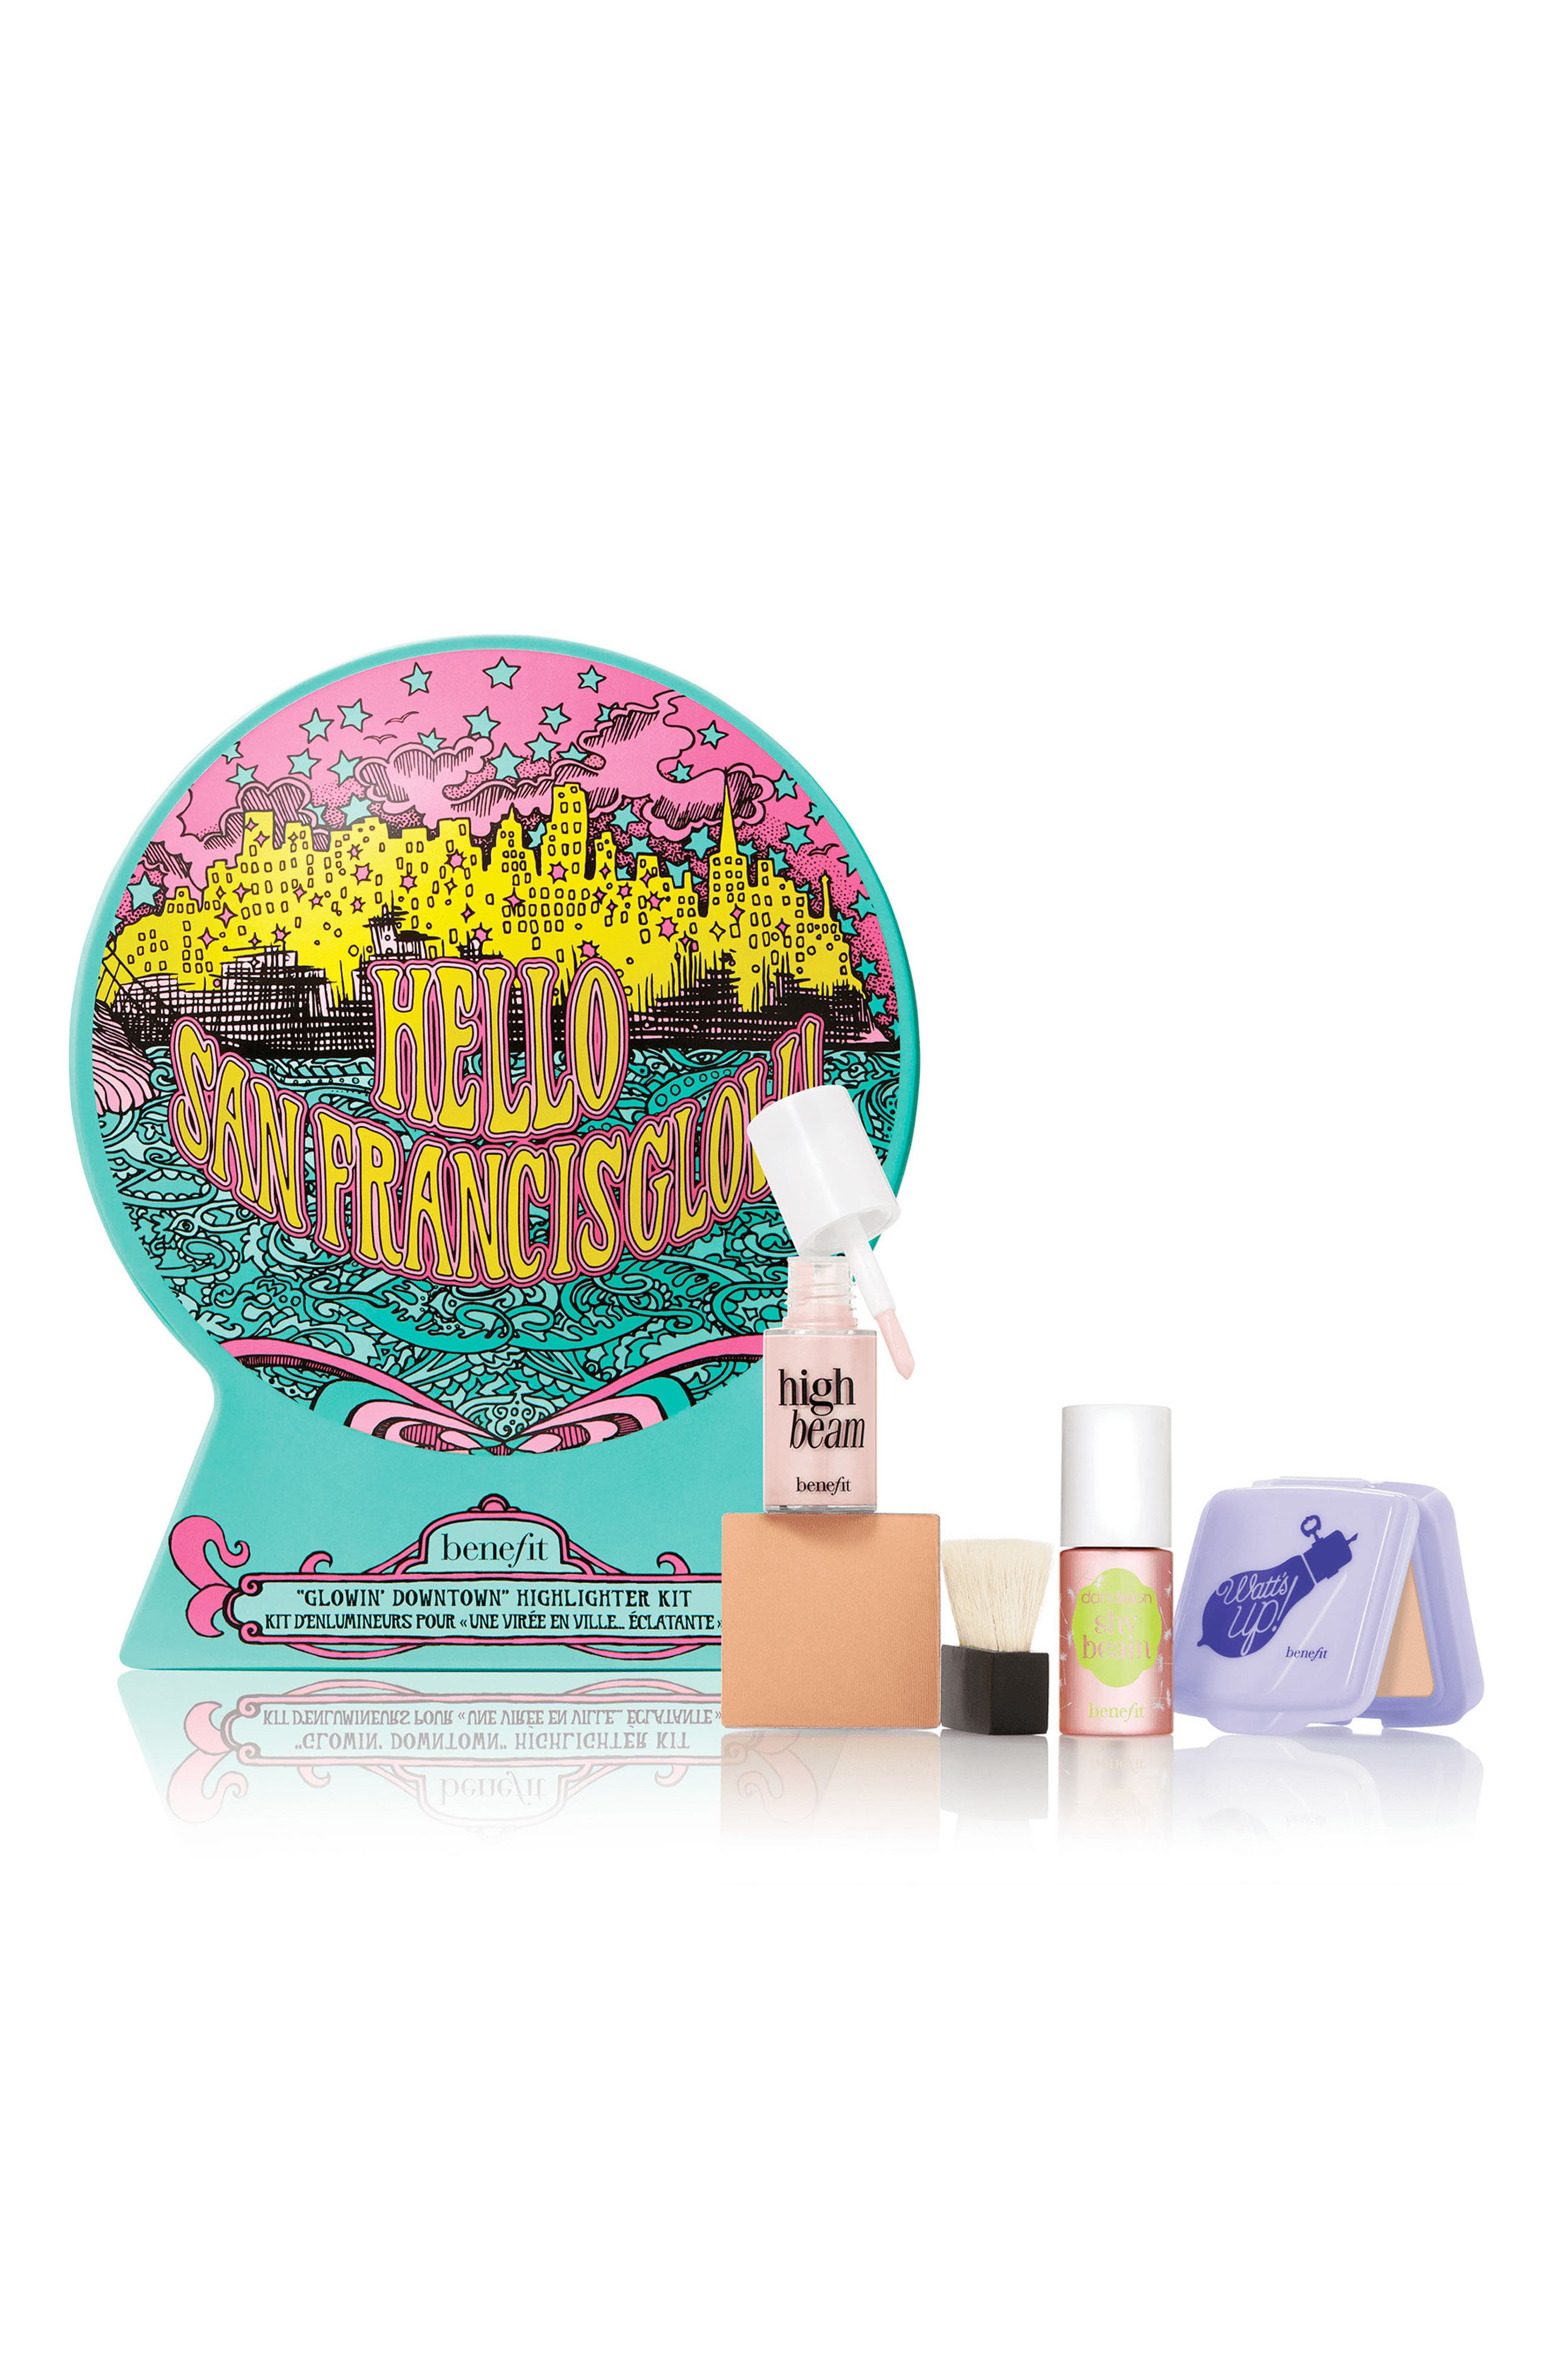 Benefit Hello, San FrancisGLOW! Highlighter Kit ($44 Value)